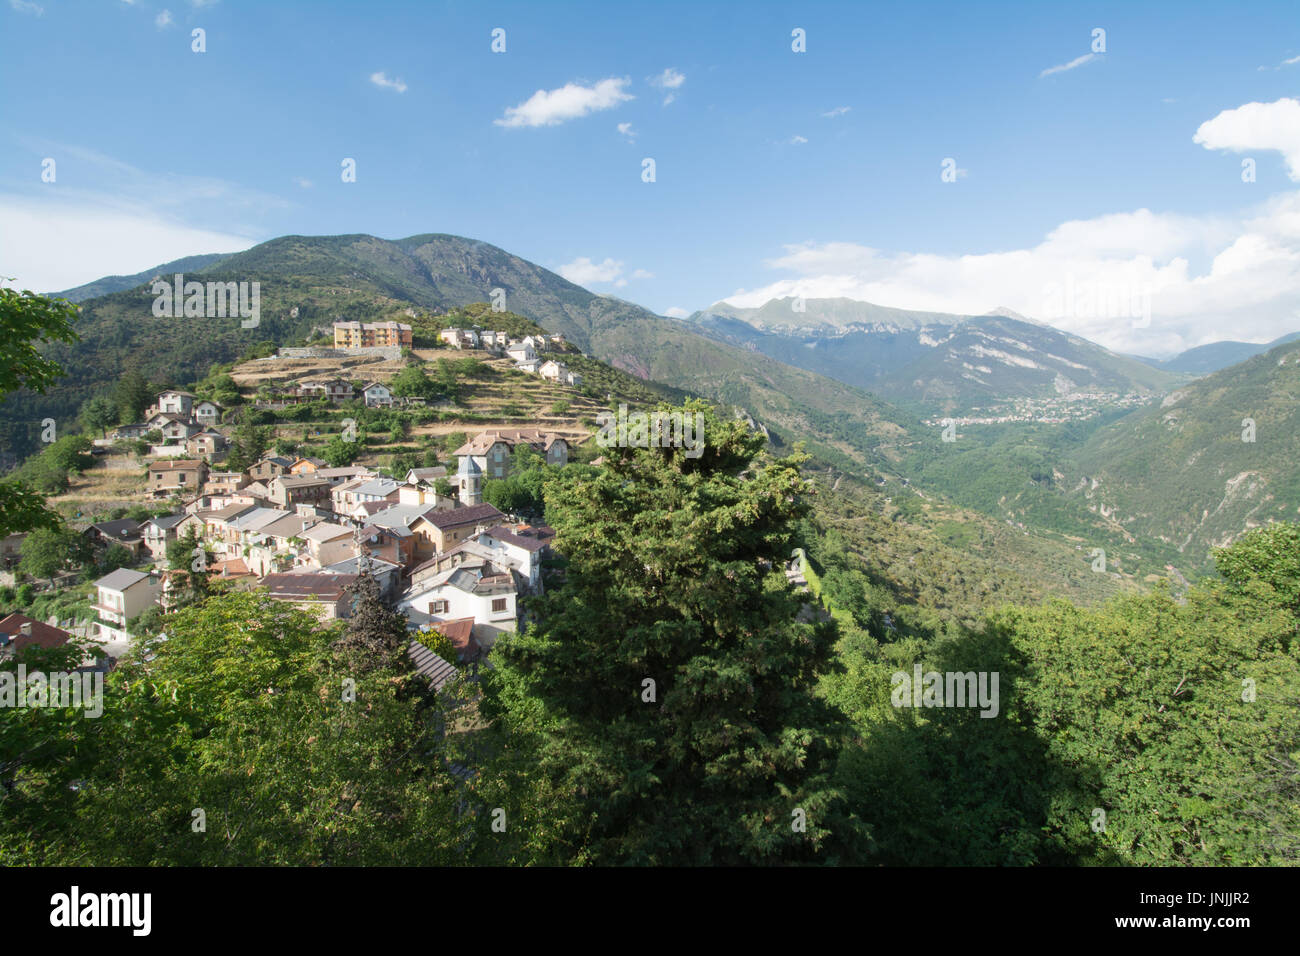 view-of-rimplas-a-picturesque-village-perched-on-a-hill-in-the-french-JNJJR2.jpg